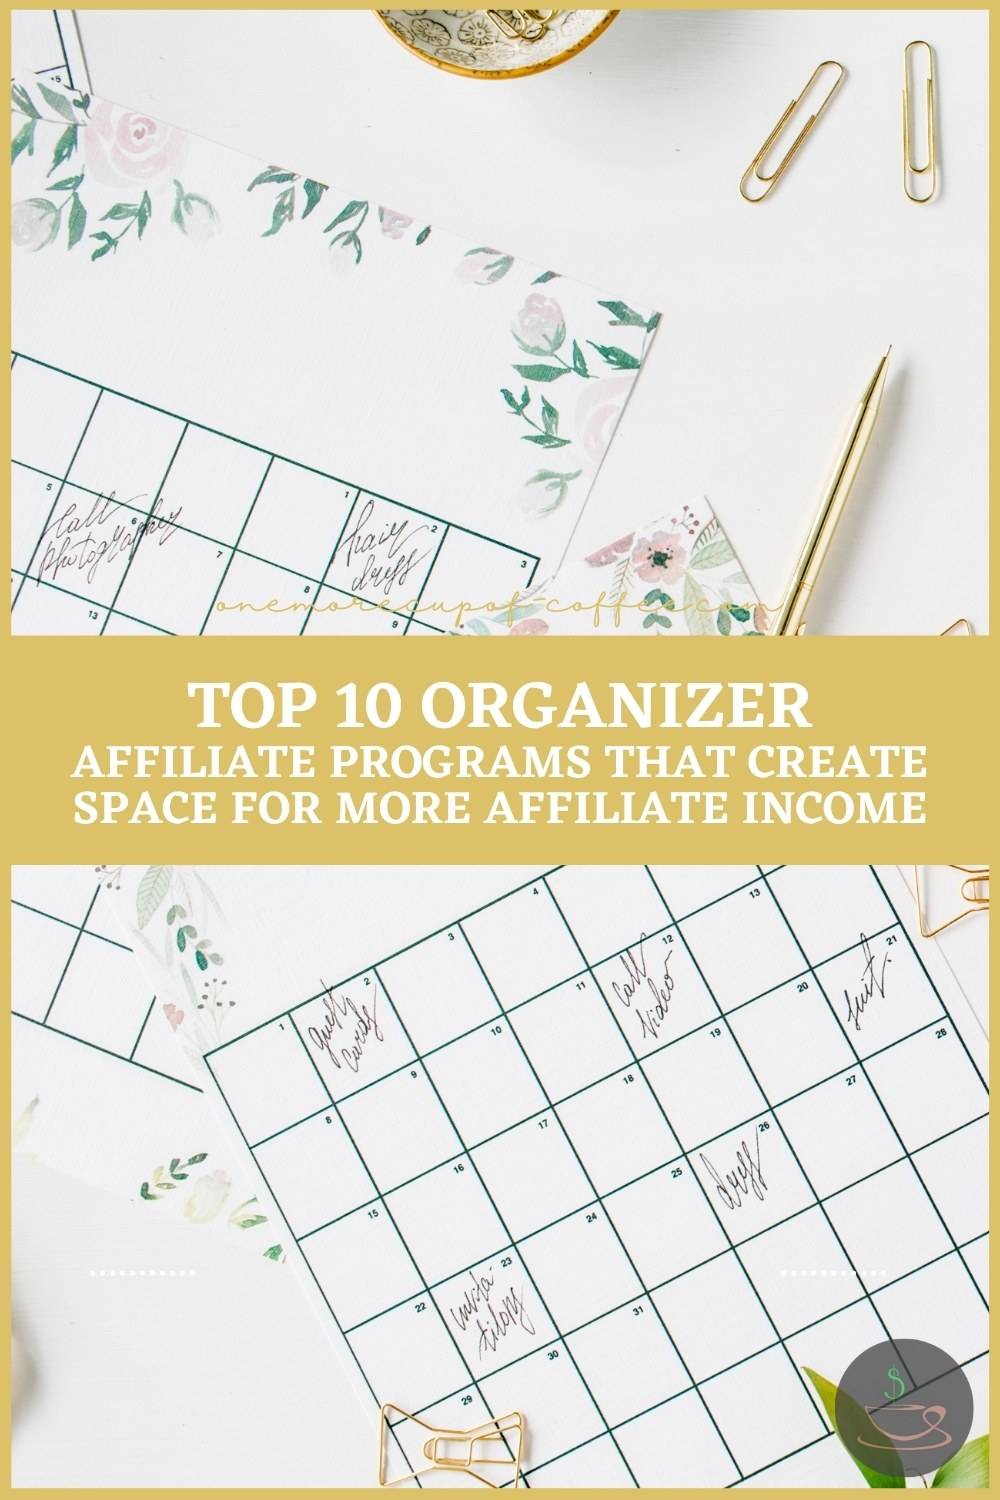 Top 10 Organizer Affiliate Programs That Create Space For More Affiliate Income